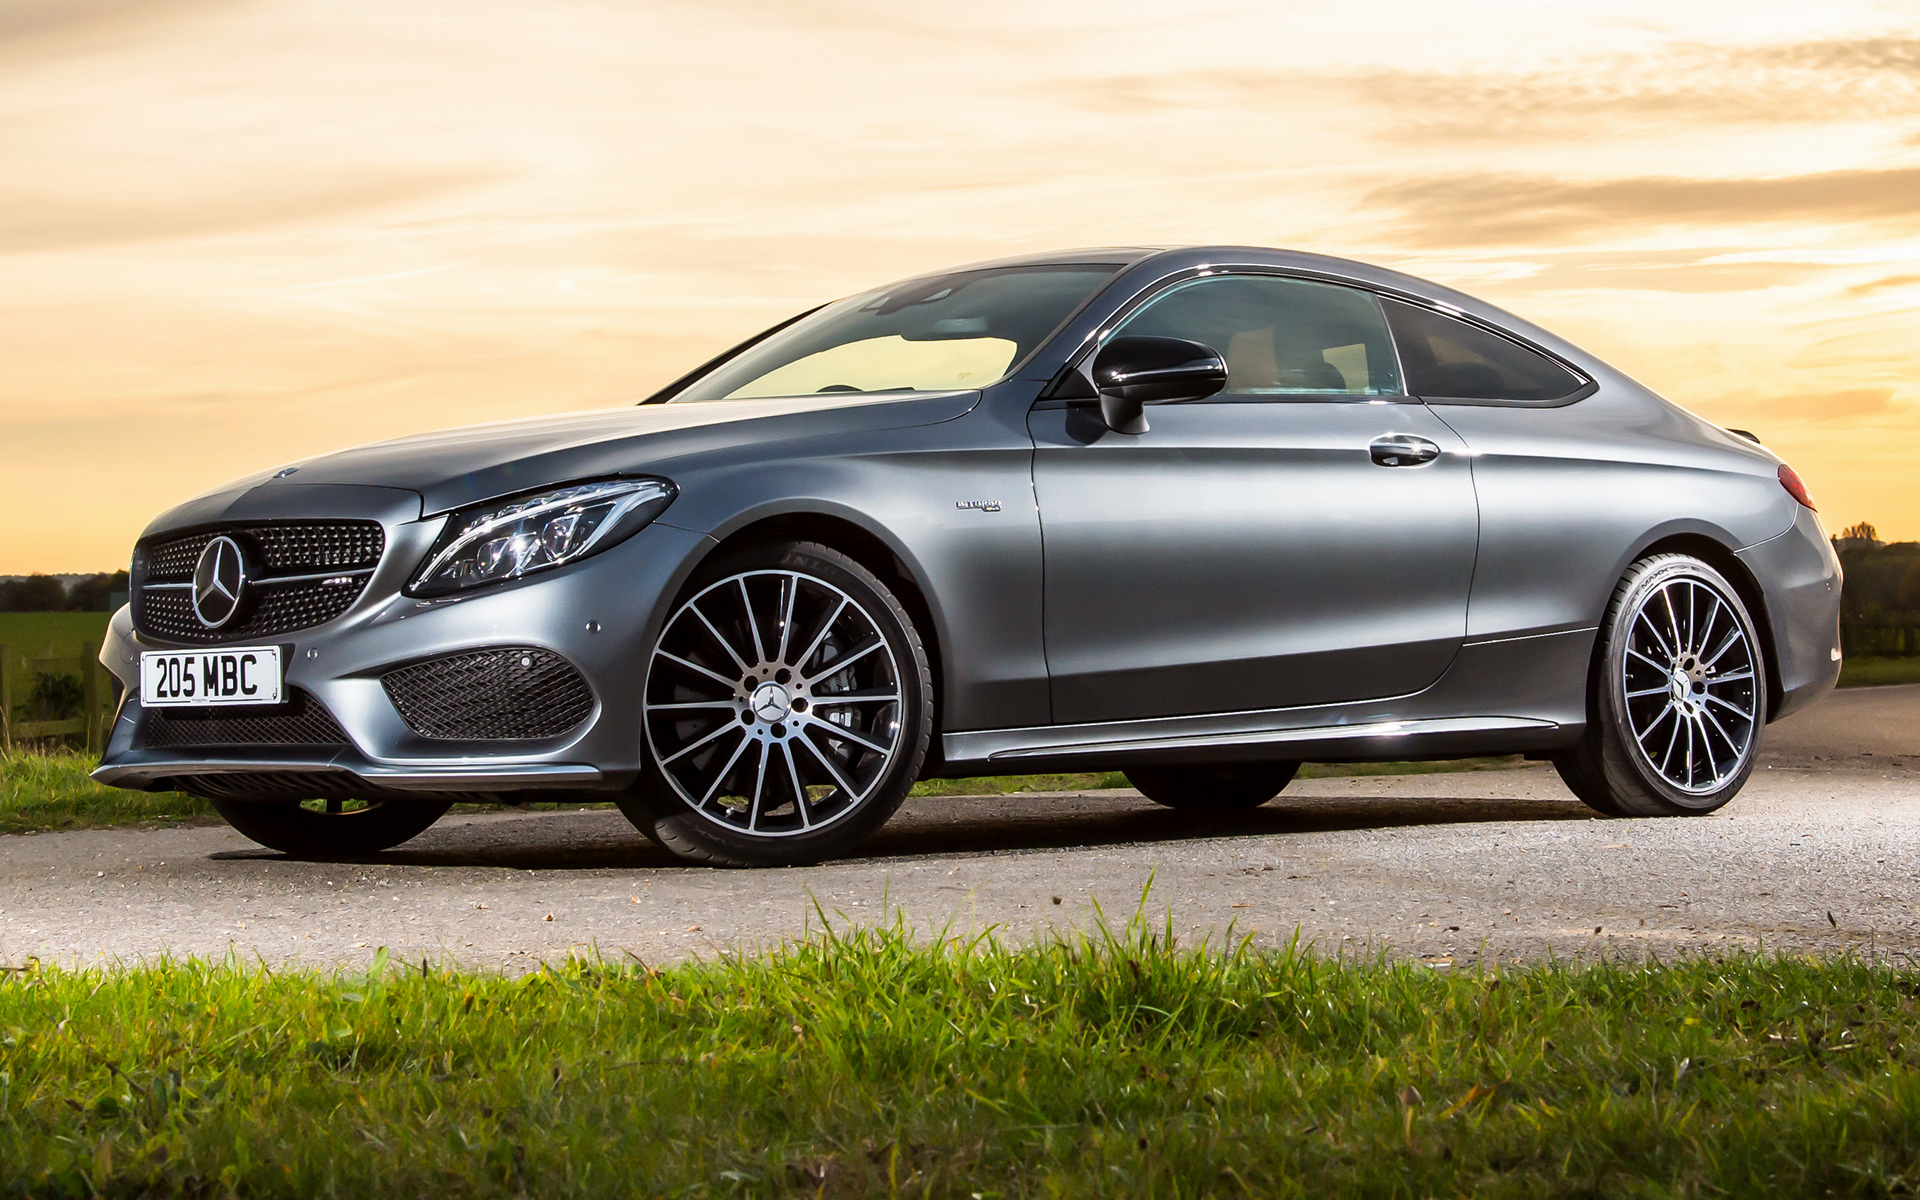 2016 Mercedes-AMG C 43 Coupe (UK) - Wallpapers and HD Images | Car Pixel